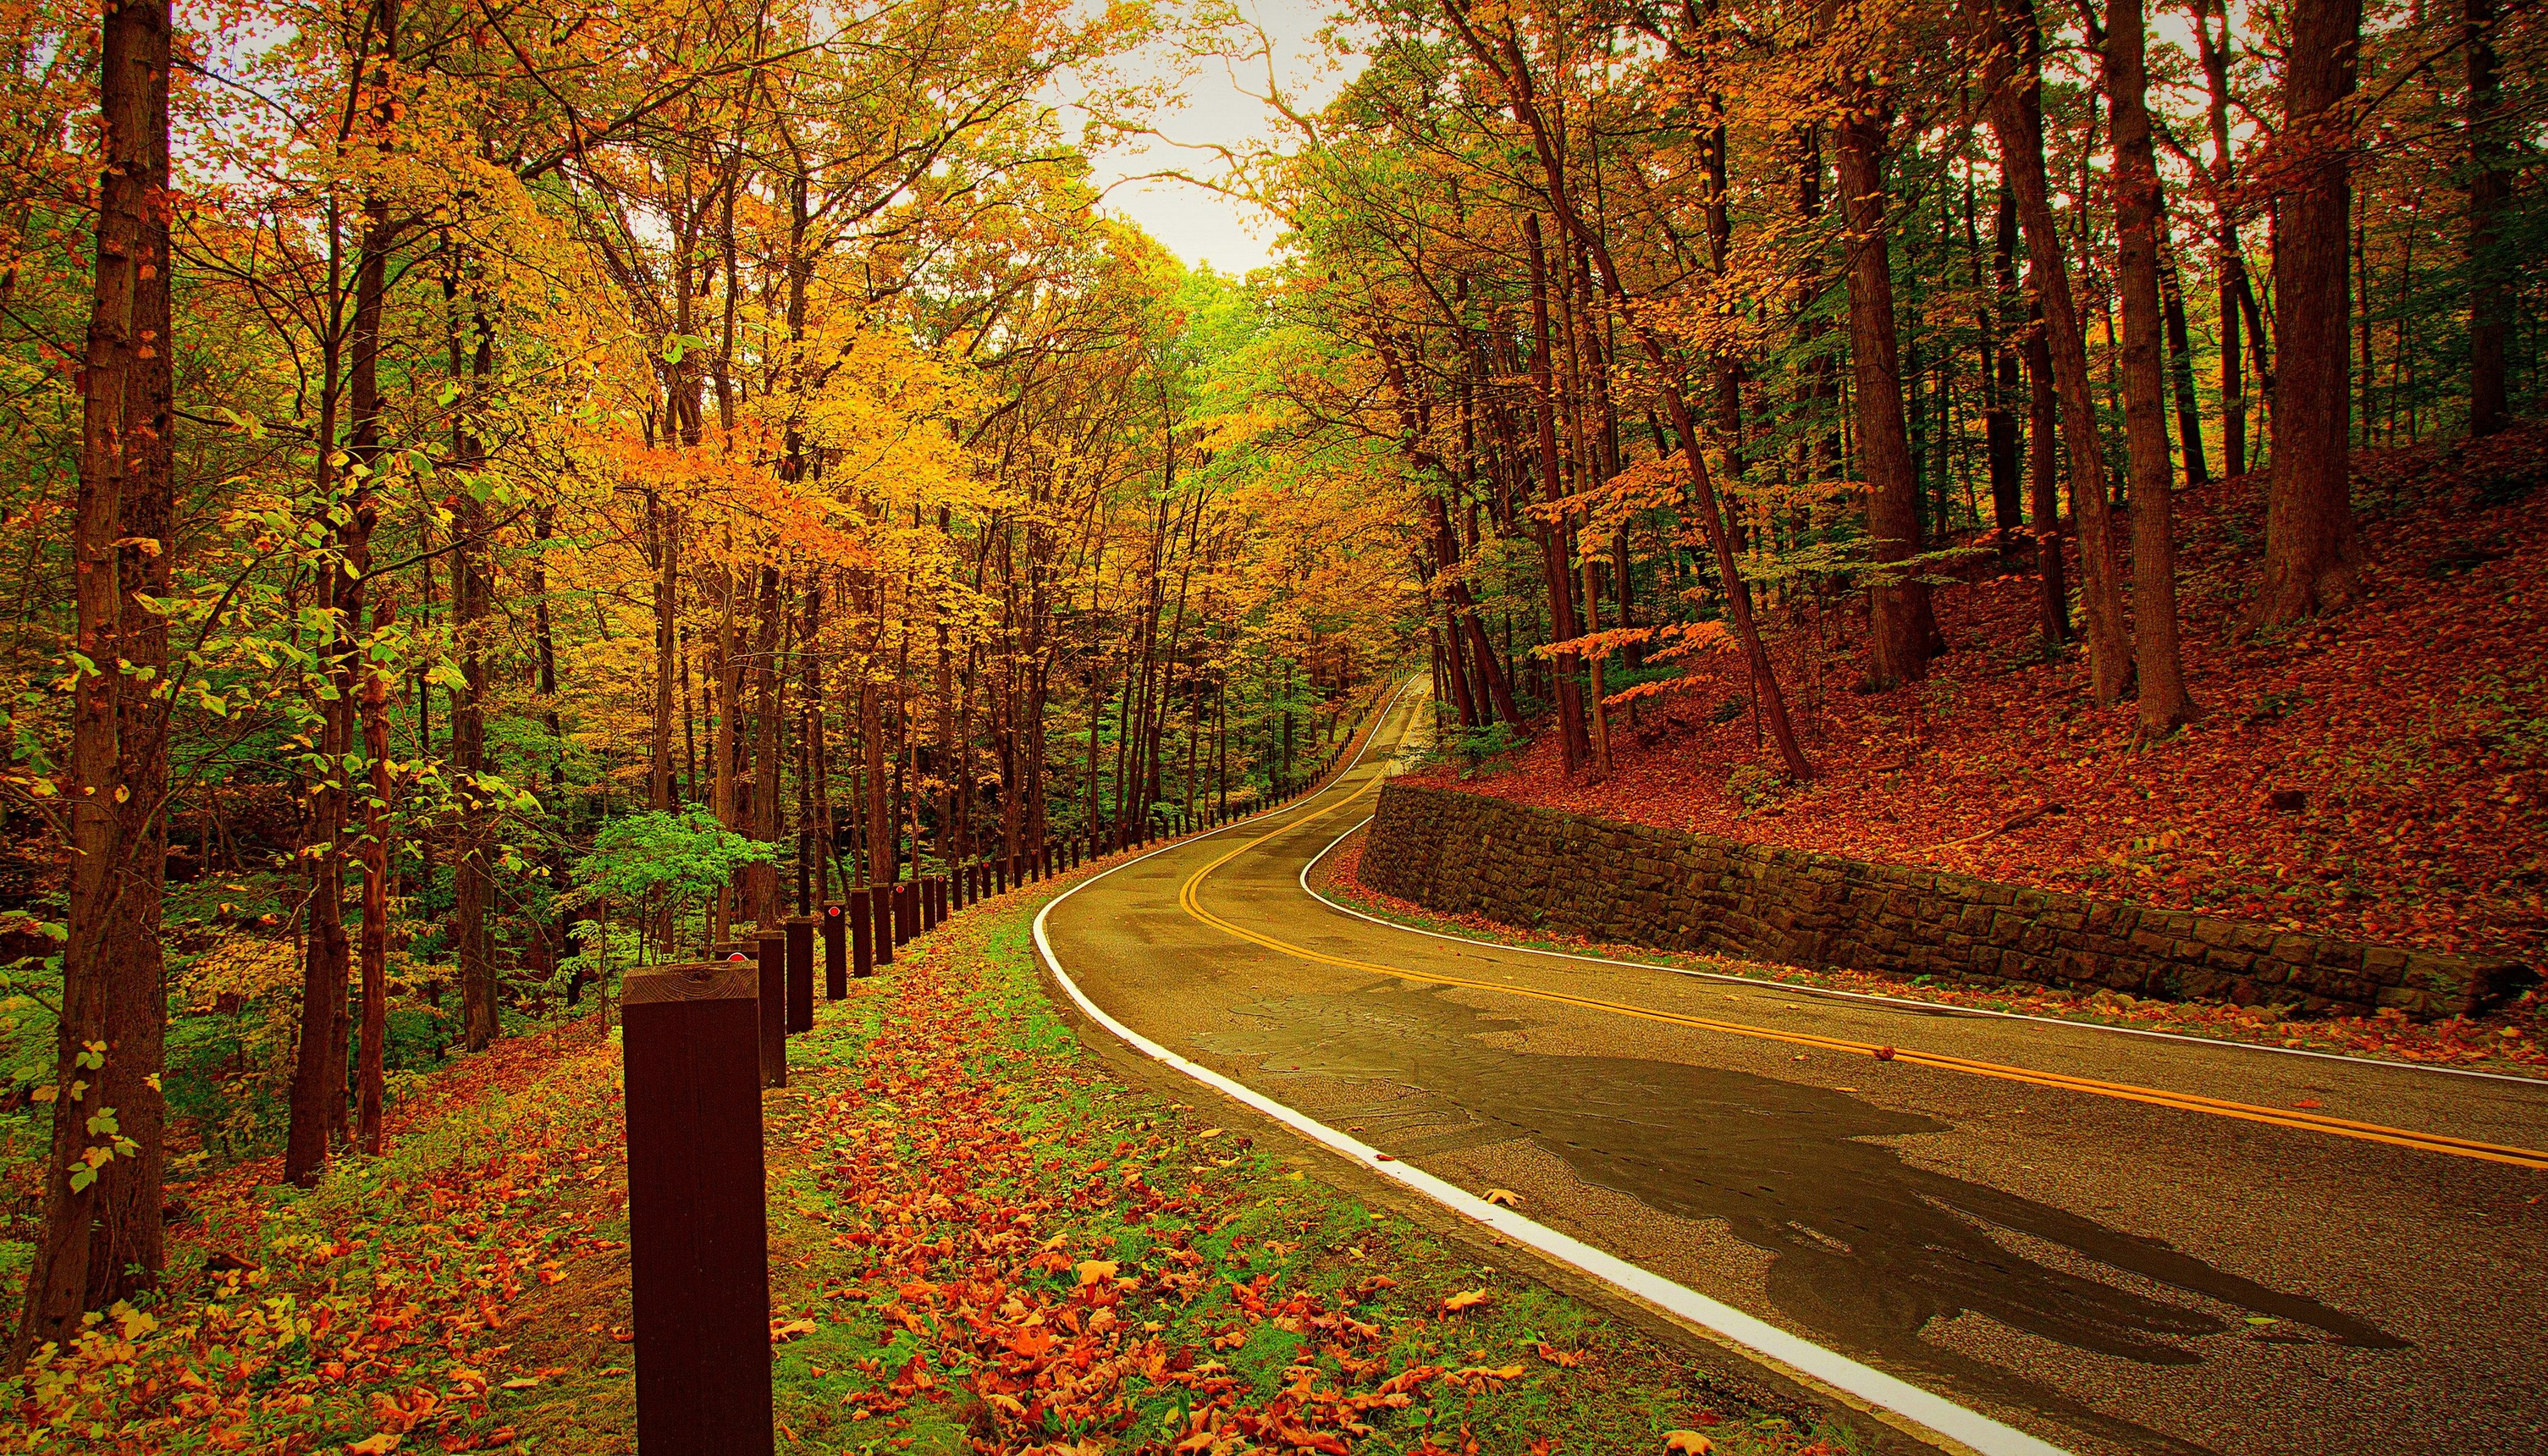 Autumn Forest Road Wallpaper Hd Nature 4k Wallpapers